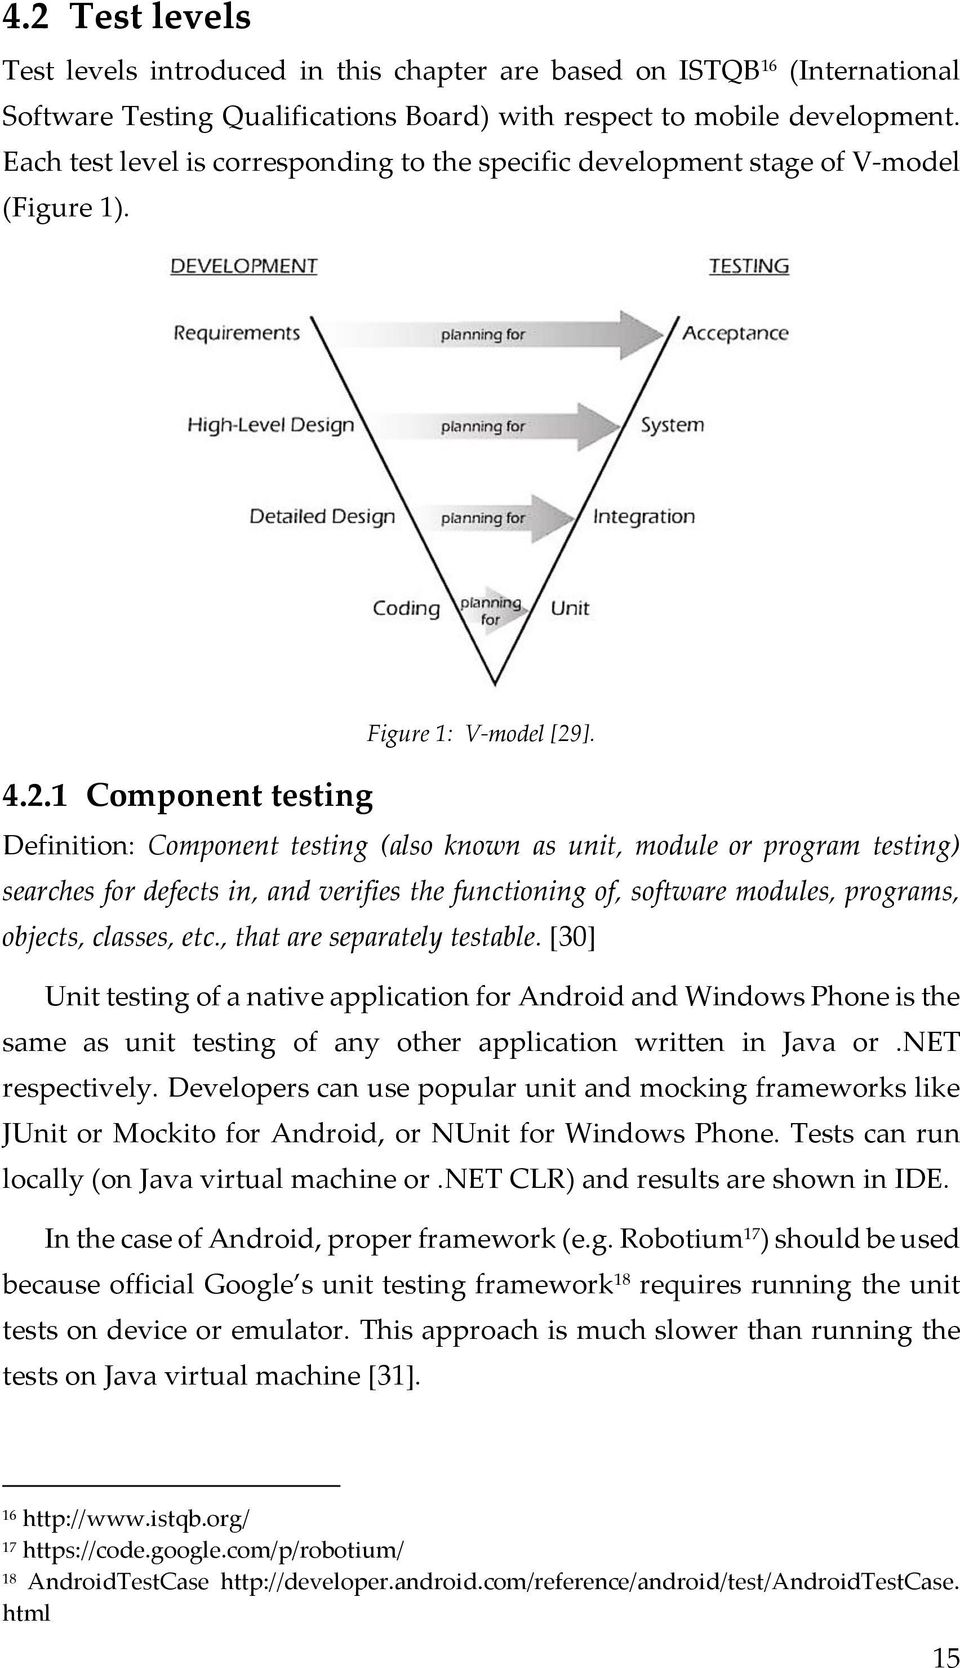 Definition: Component testing (also known as unit, module or program testing) searches for defects in, and verifies the functioning of, software modules, programs, objects, classes, etc.